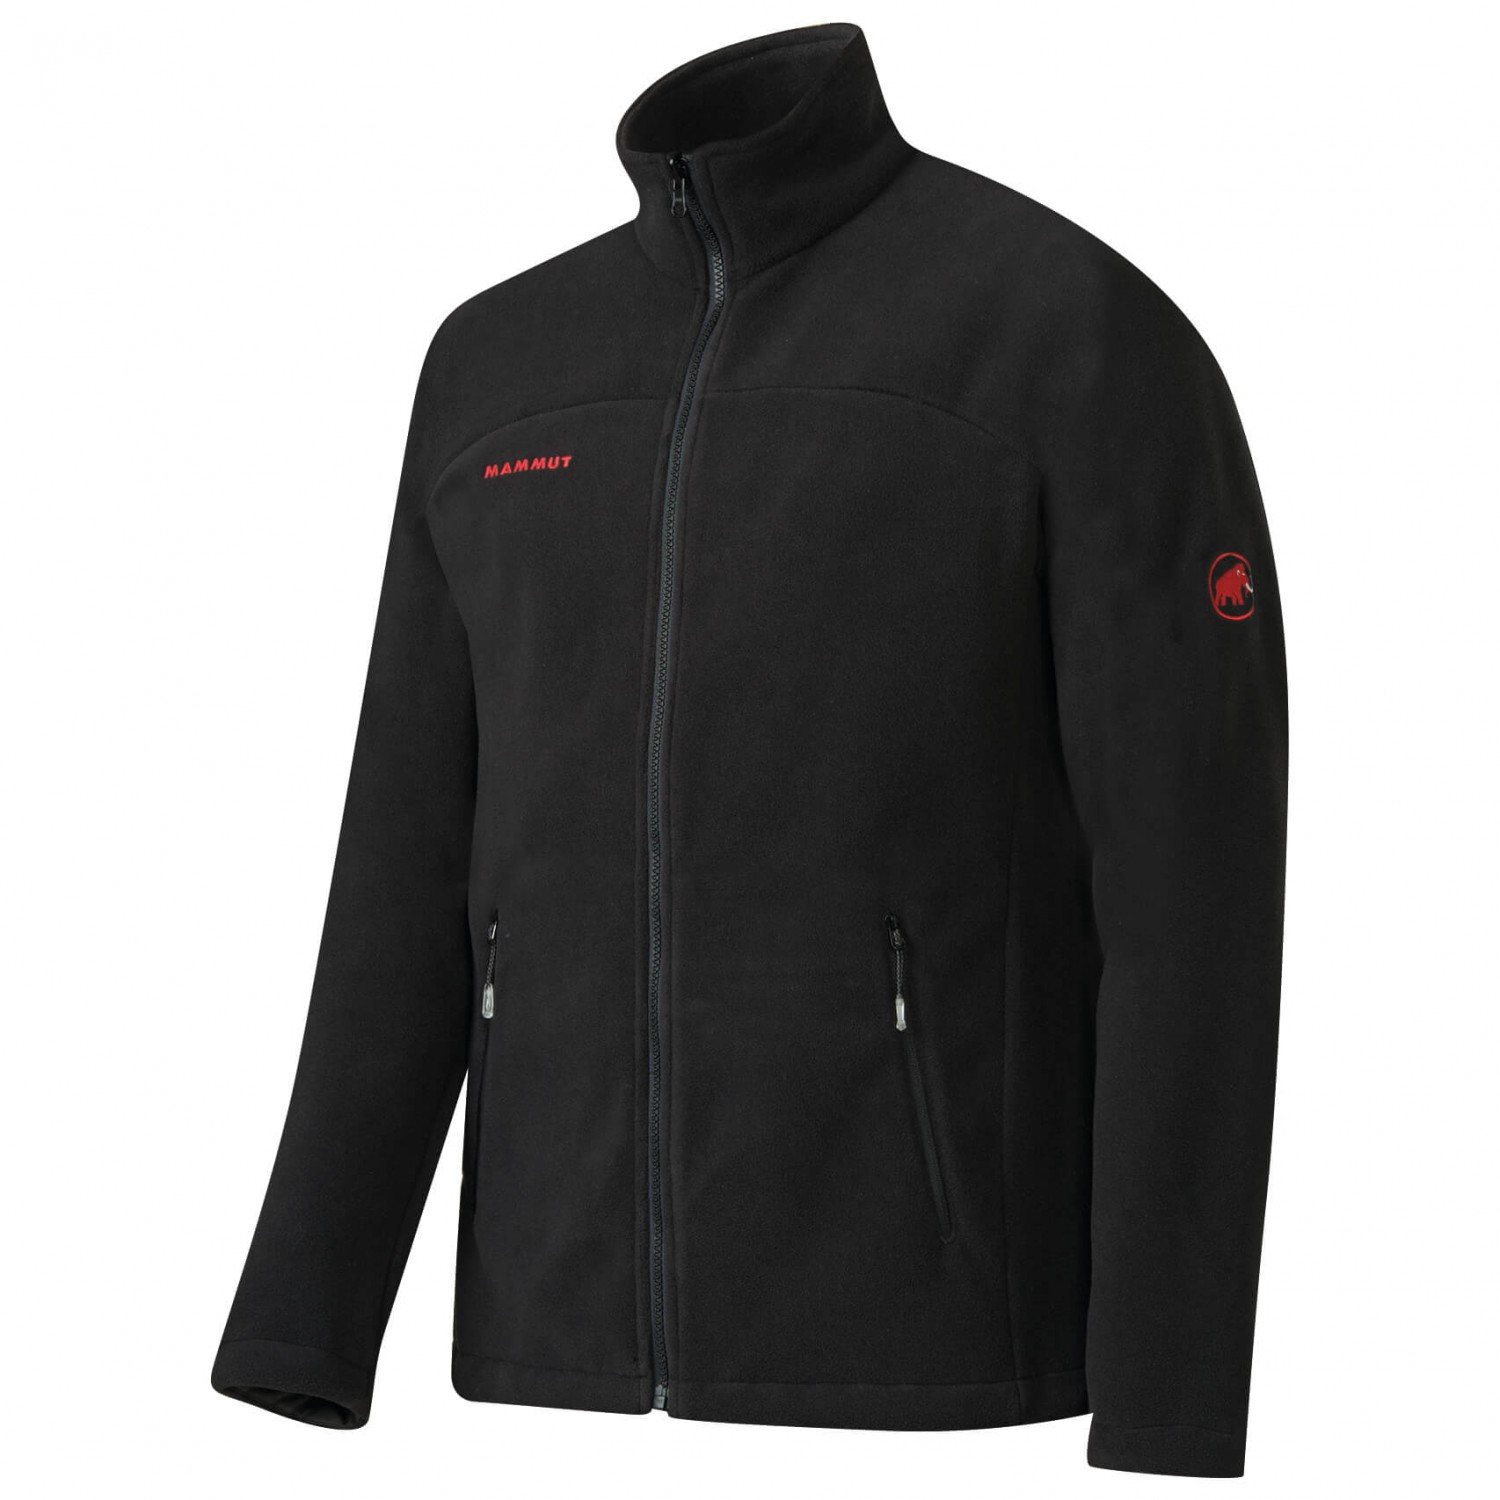 mammut innominata ml jacket fleecejacke herren online kaufen. Black Bedroom Furniture Sets. Home Design Ideas